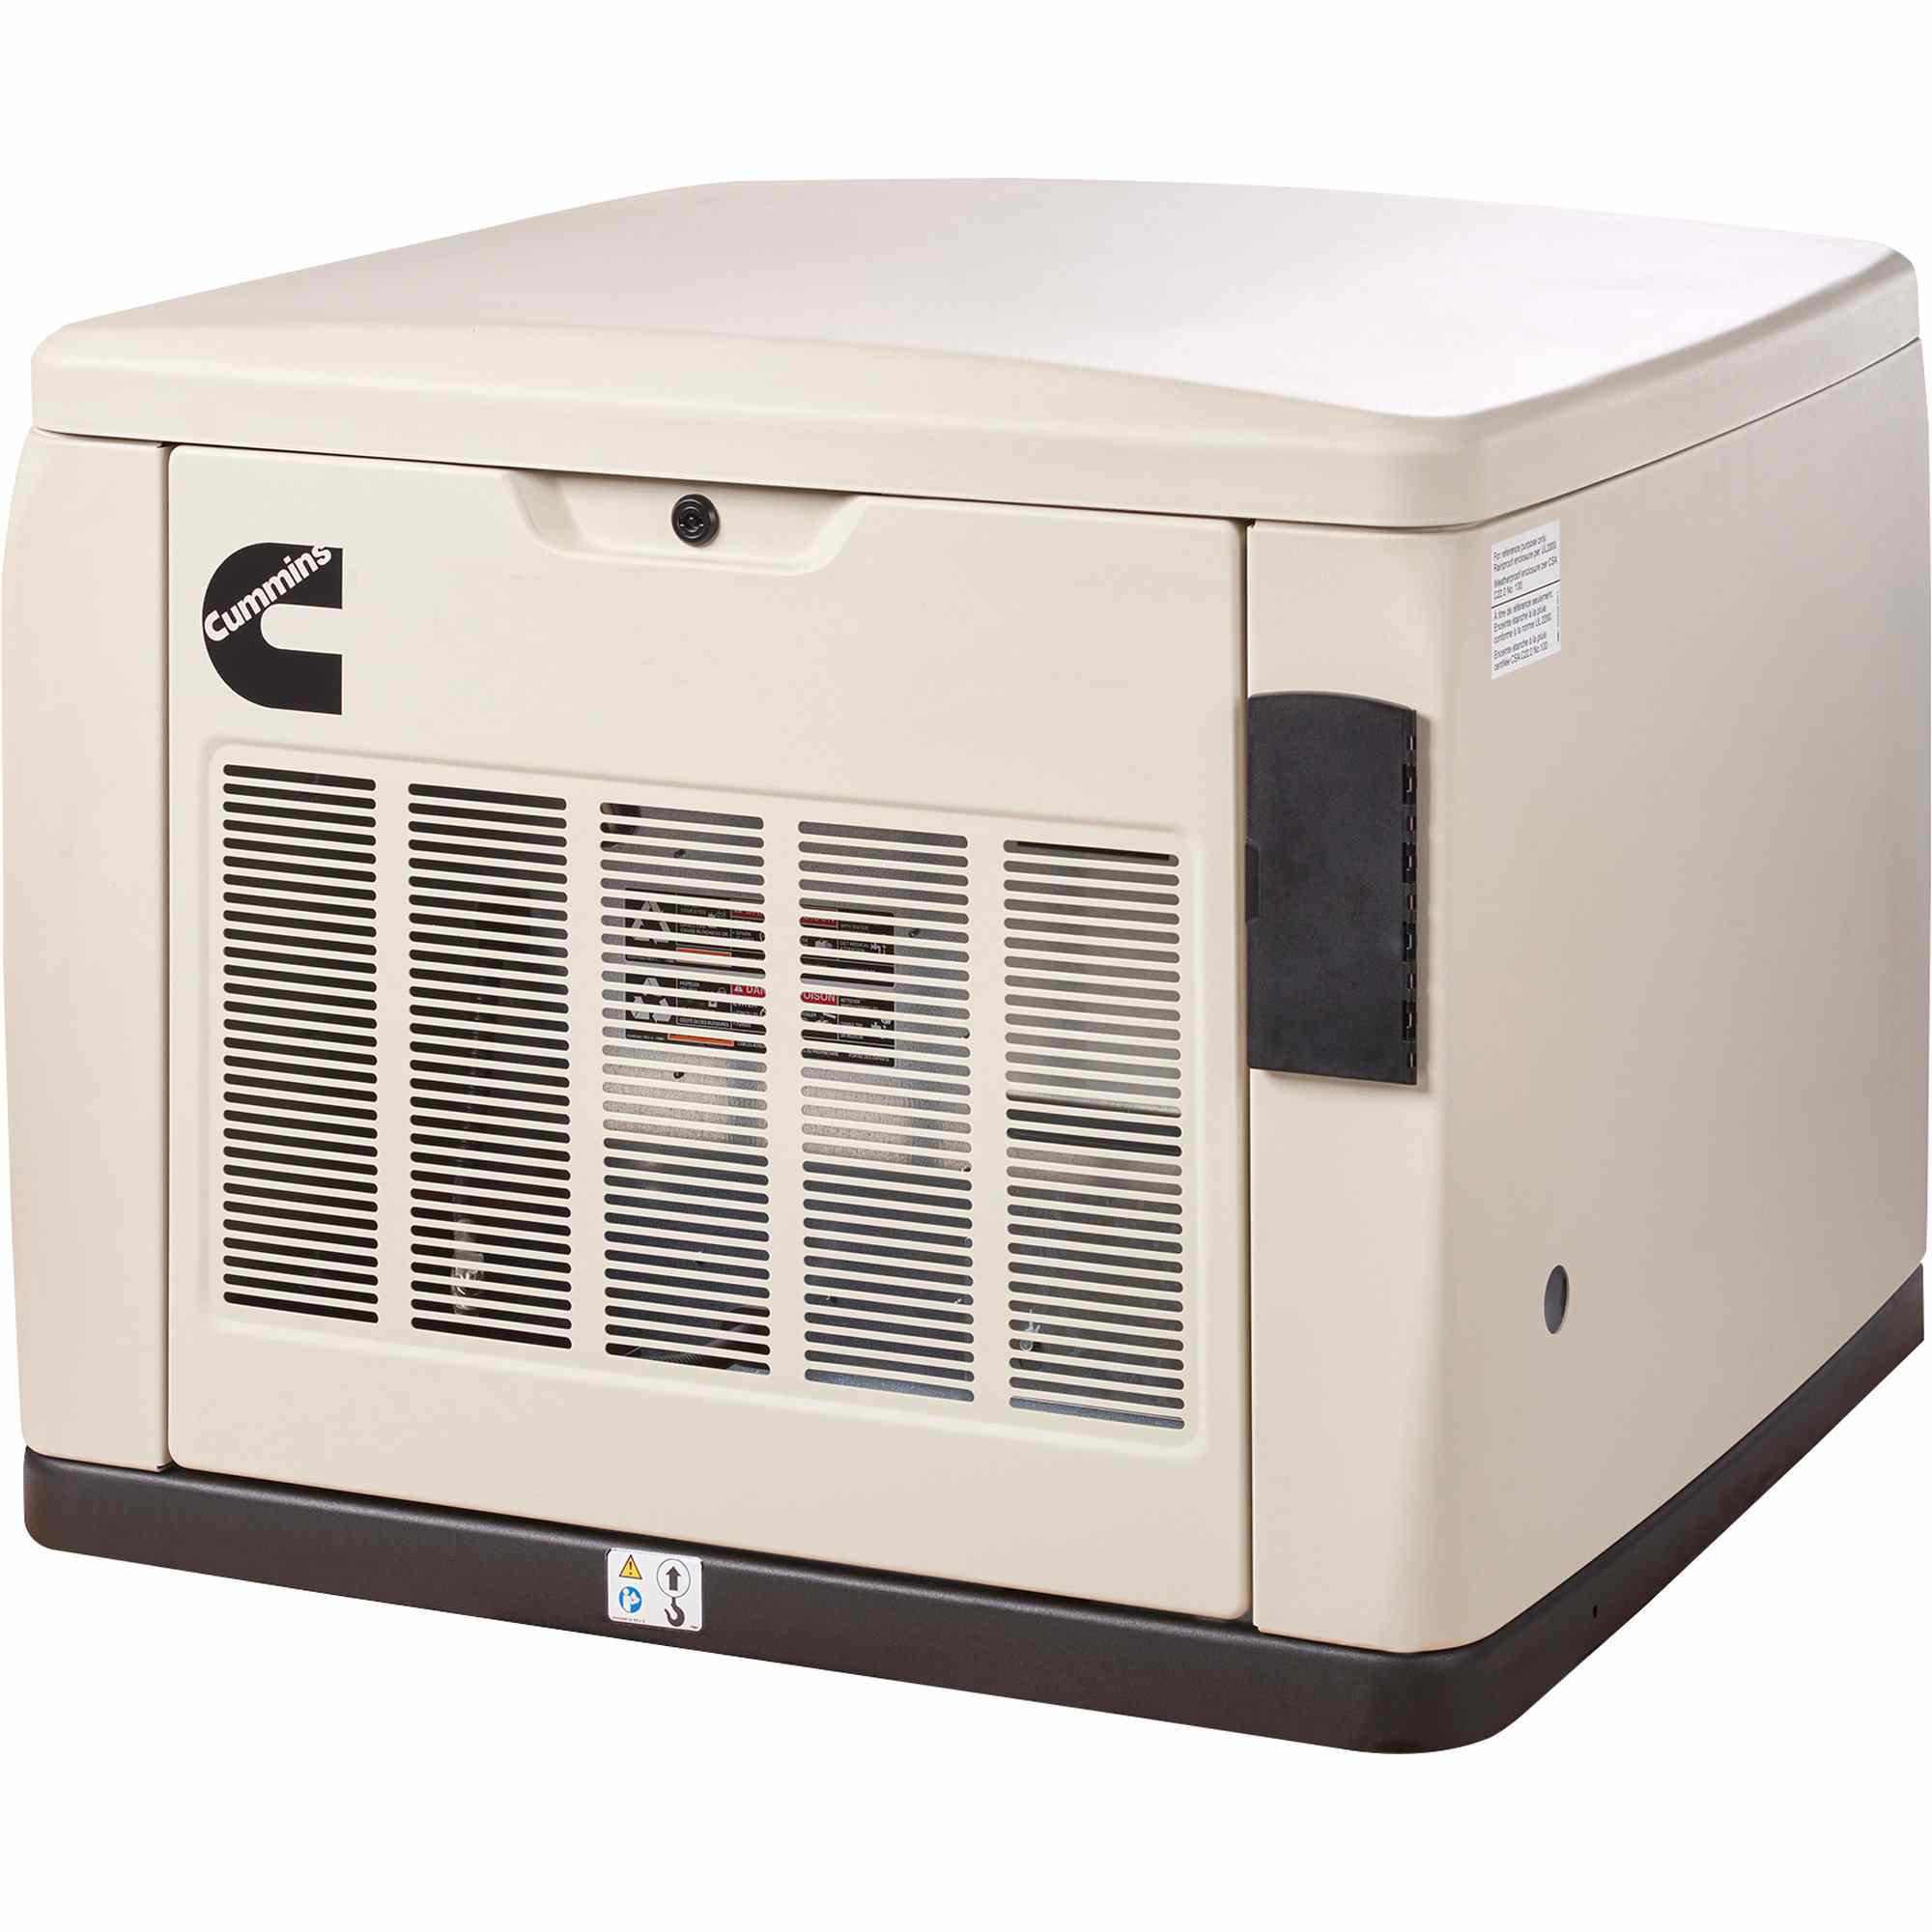 Cummins 13 kW QuietConnect Home Standby Generator, Model RS13A